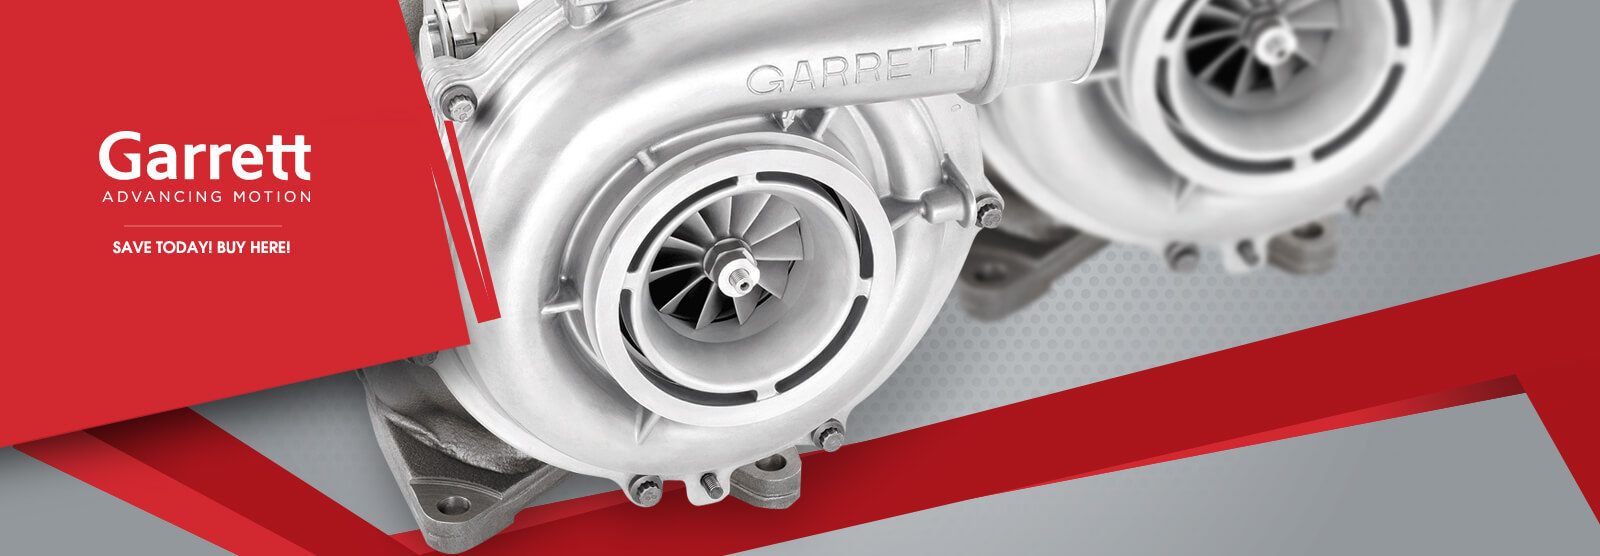 Garrett Turbochargers, Authorized Dealer